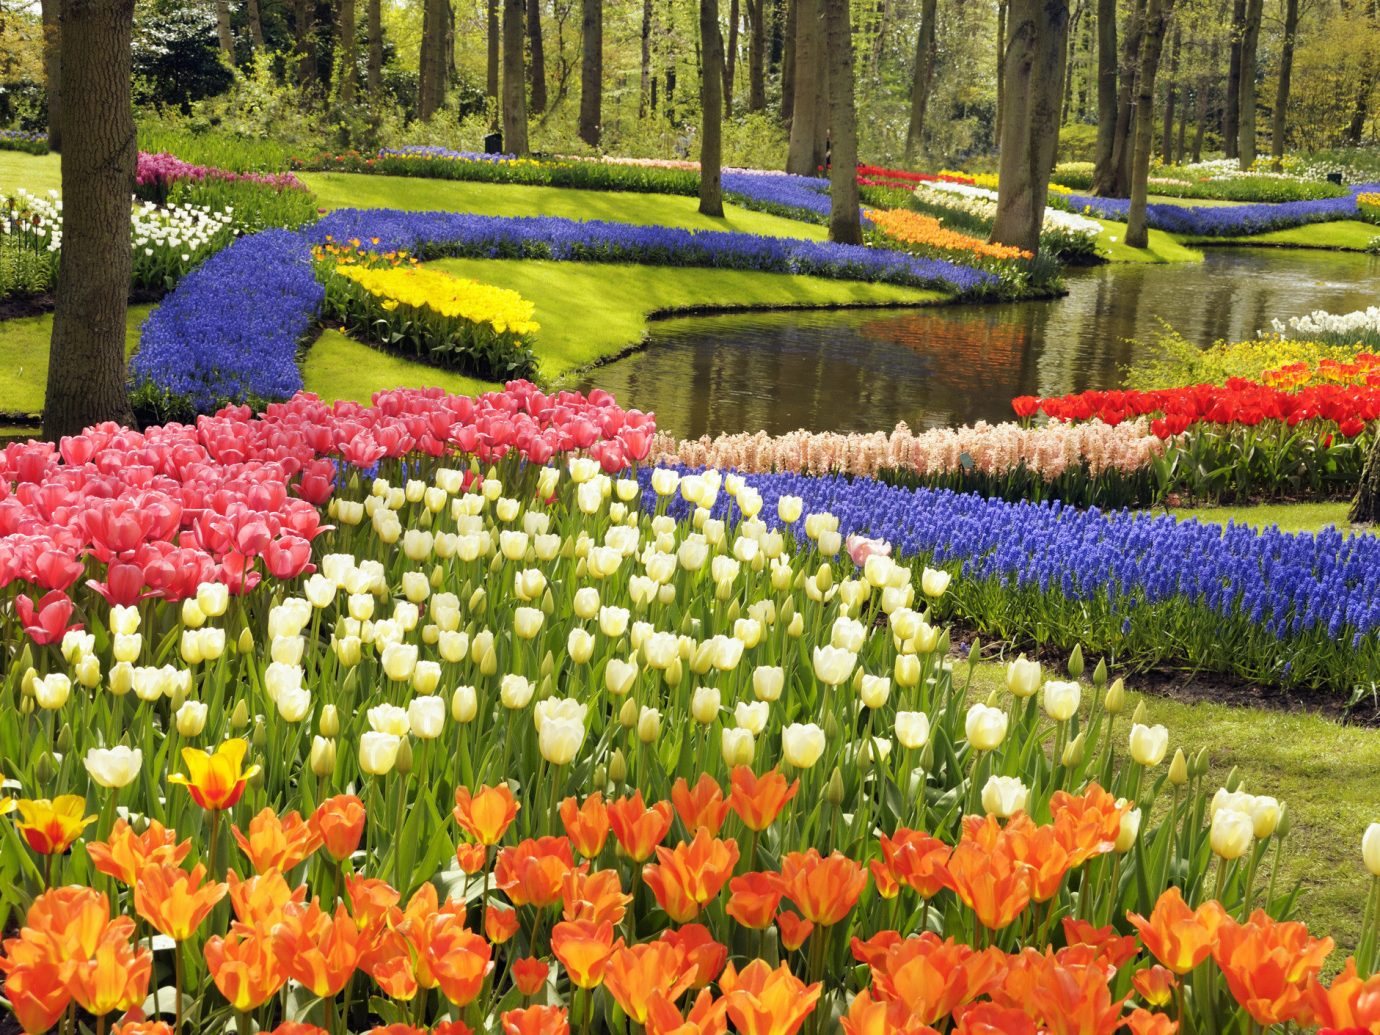 Trip Ideas grass tree flower outdoor Garden plant tulip flora botany land plant flowering plant colorful park botanical garden annual plant lawn lily family colored surrounded